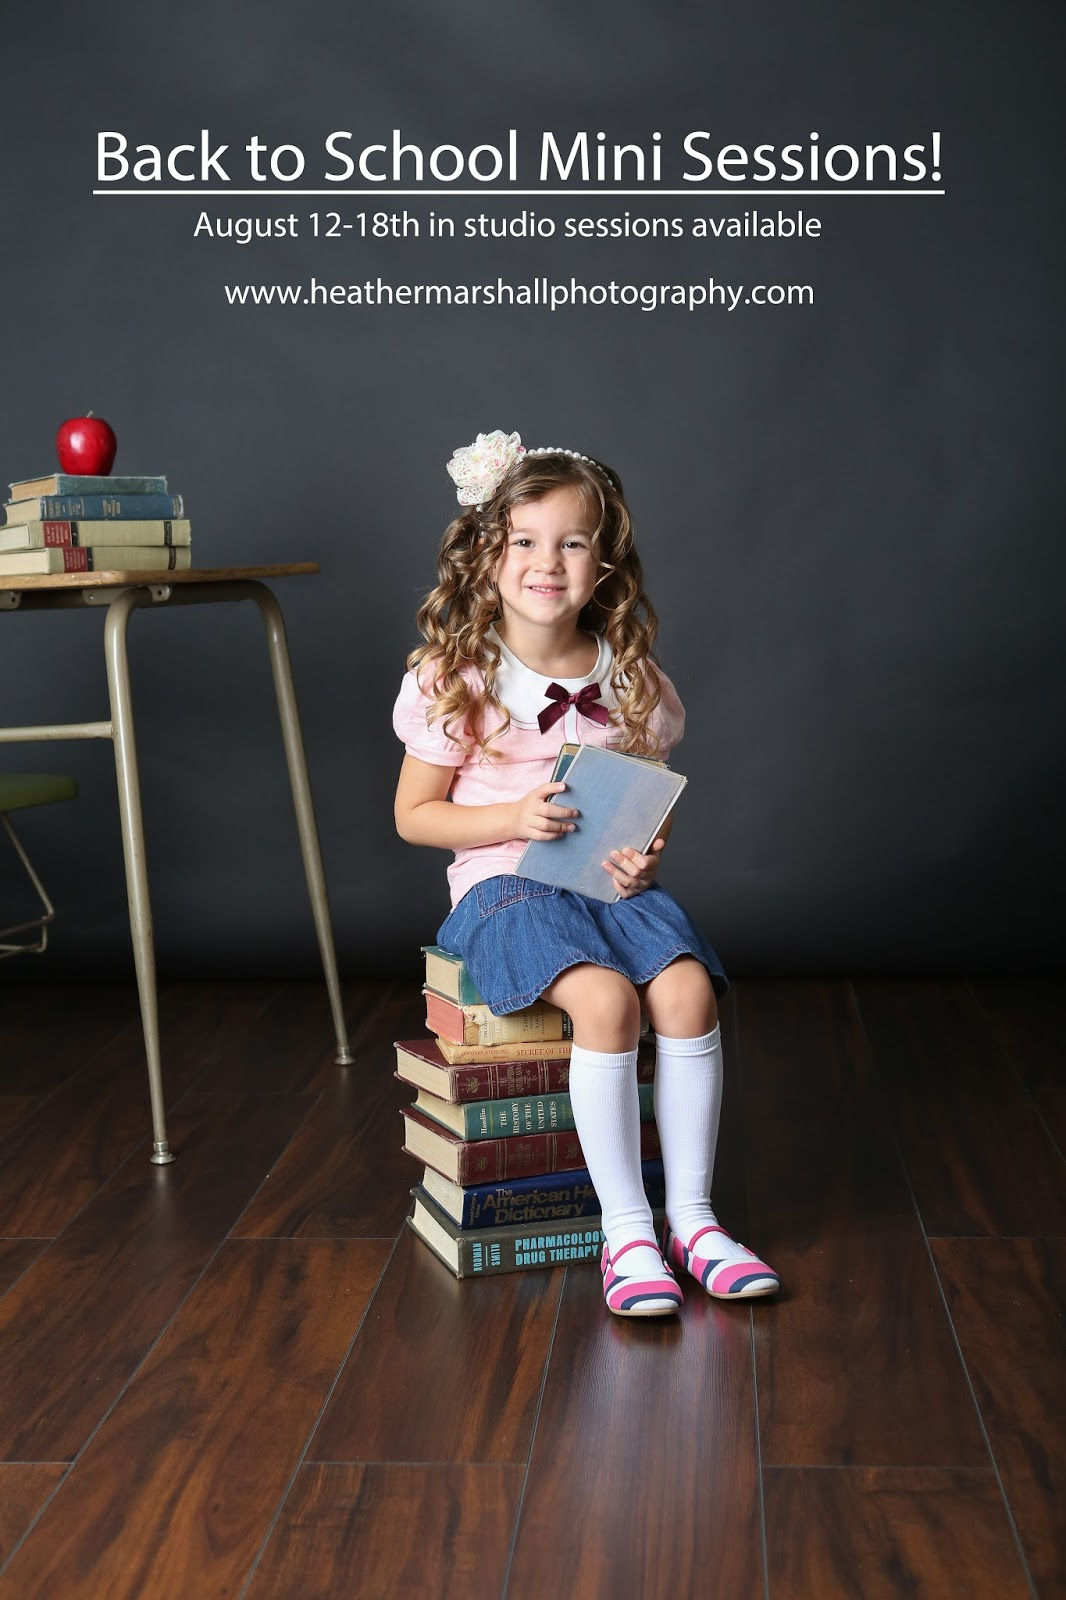 heather marshall photography  back to school sessions with heather marshall photography